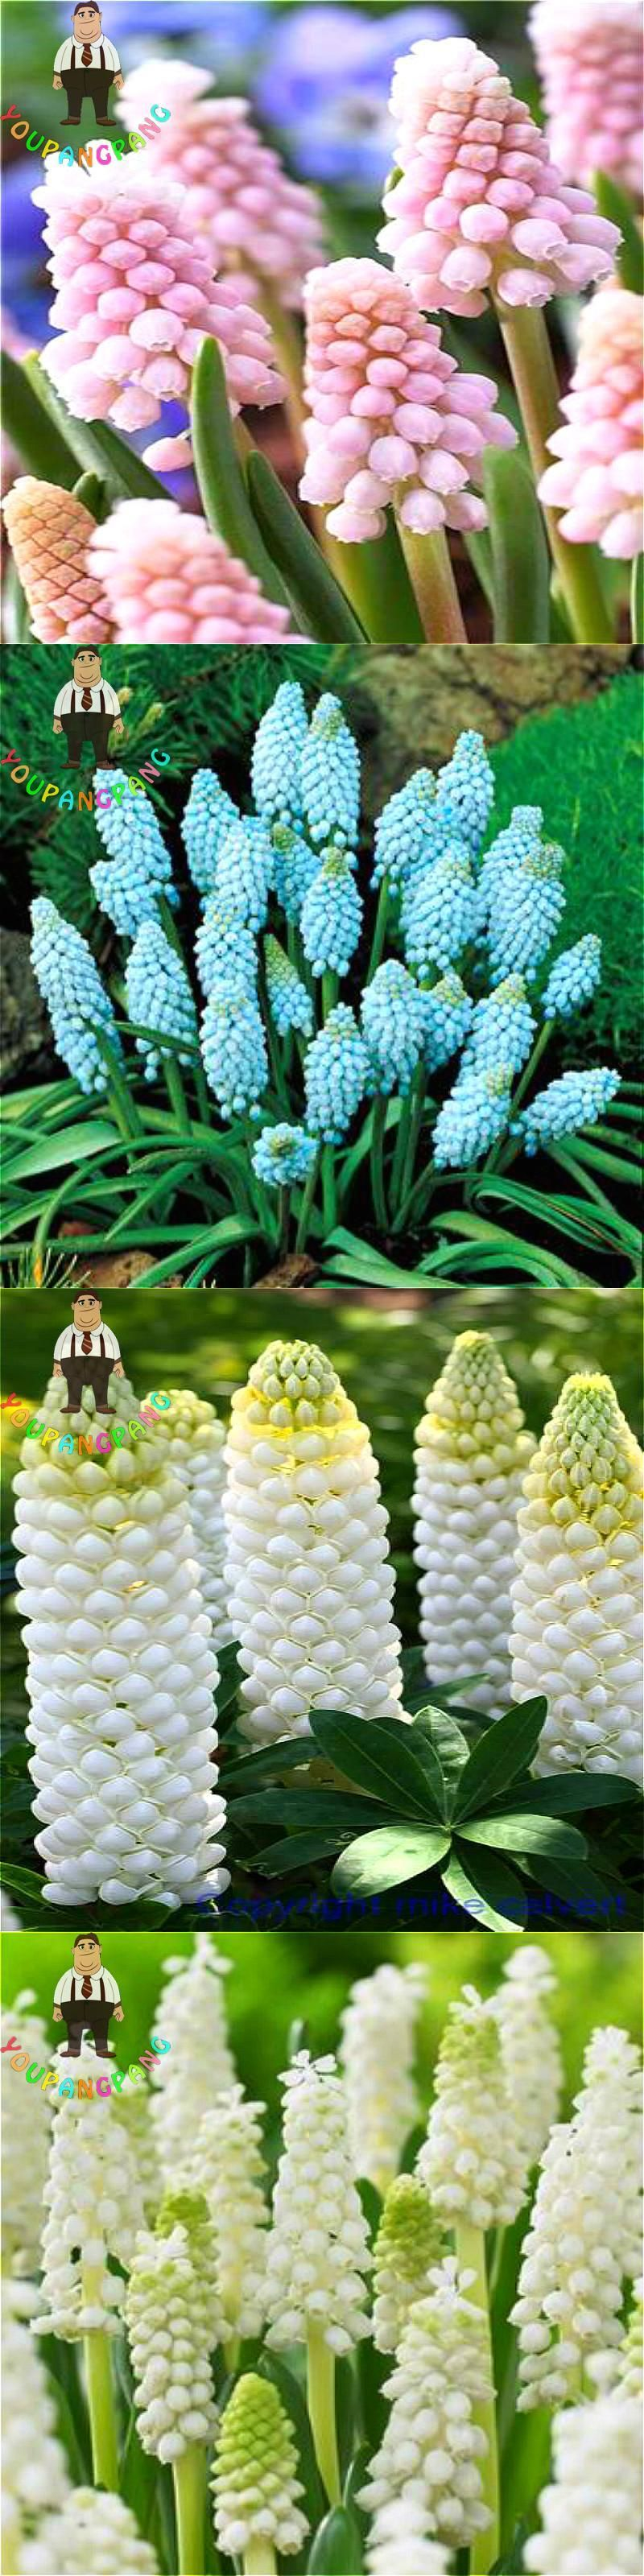 100pcs/bag Hyacinth Seeds Garden Bonsai Flower Seeds New Hydroponic ...